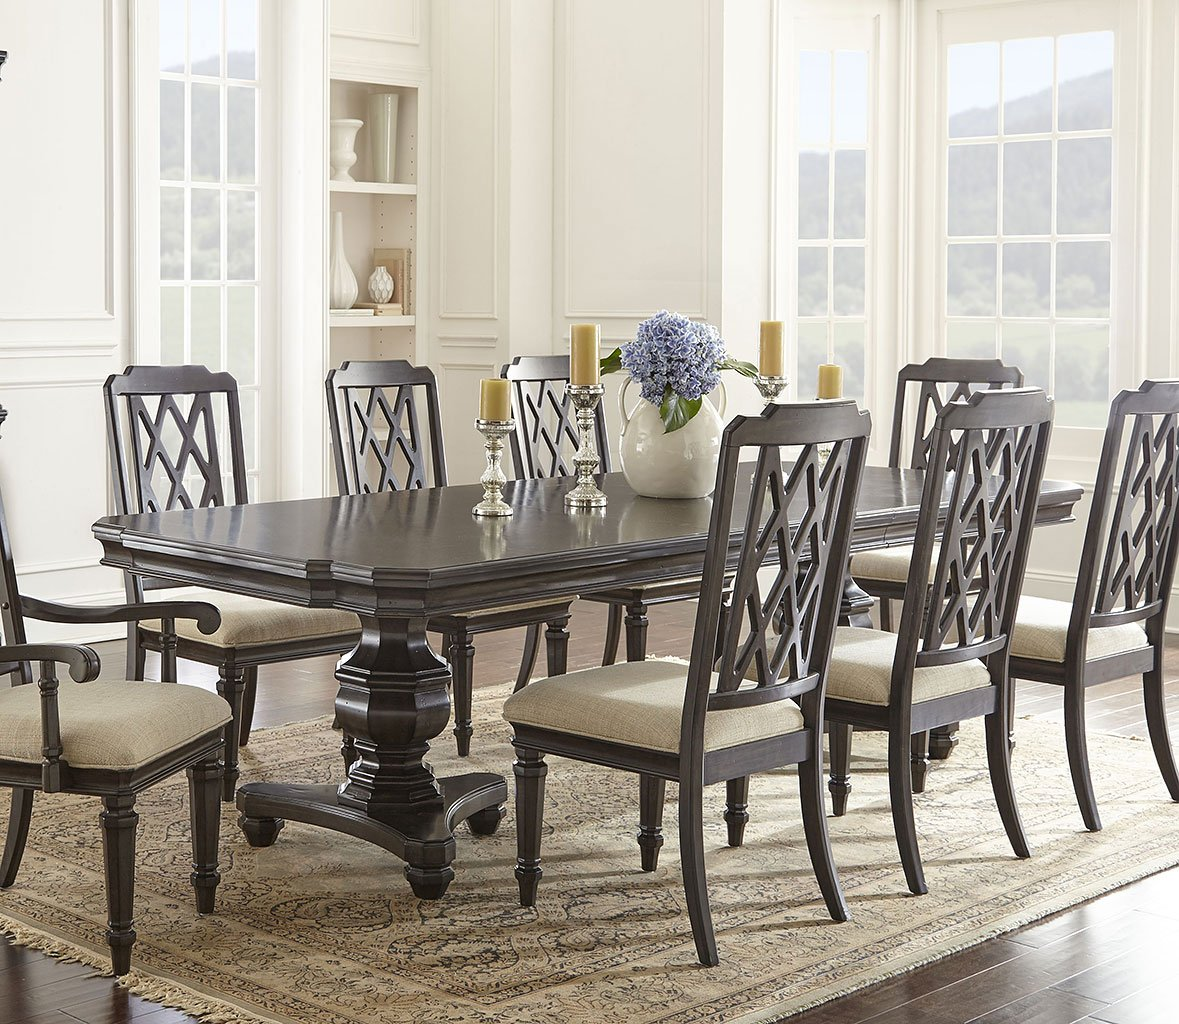 Vivaldi Double Pedestal Dining Table